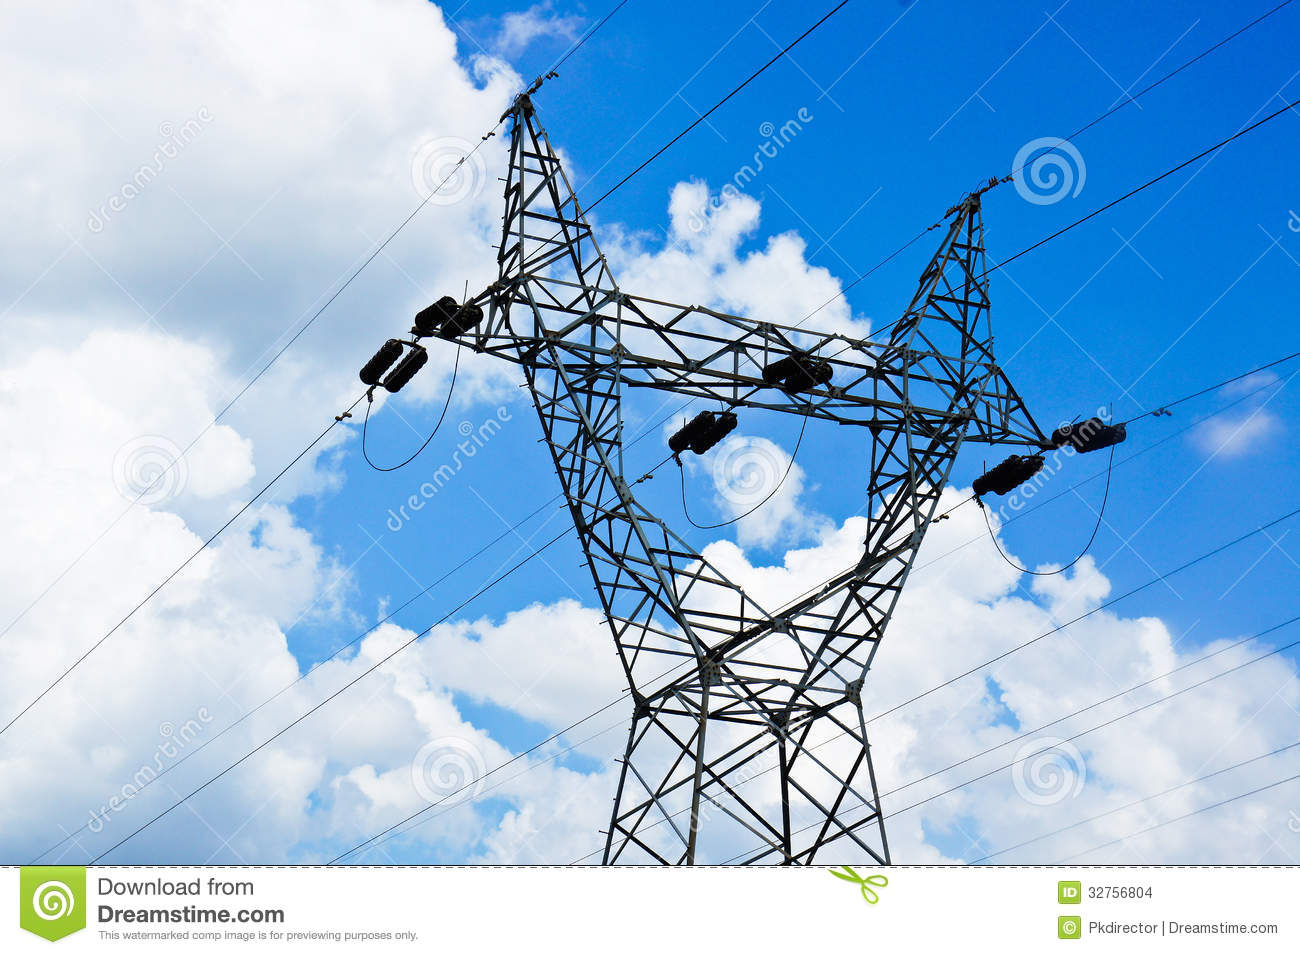 High Voltage Pole Stock Images - Image: 32756804